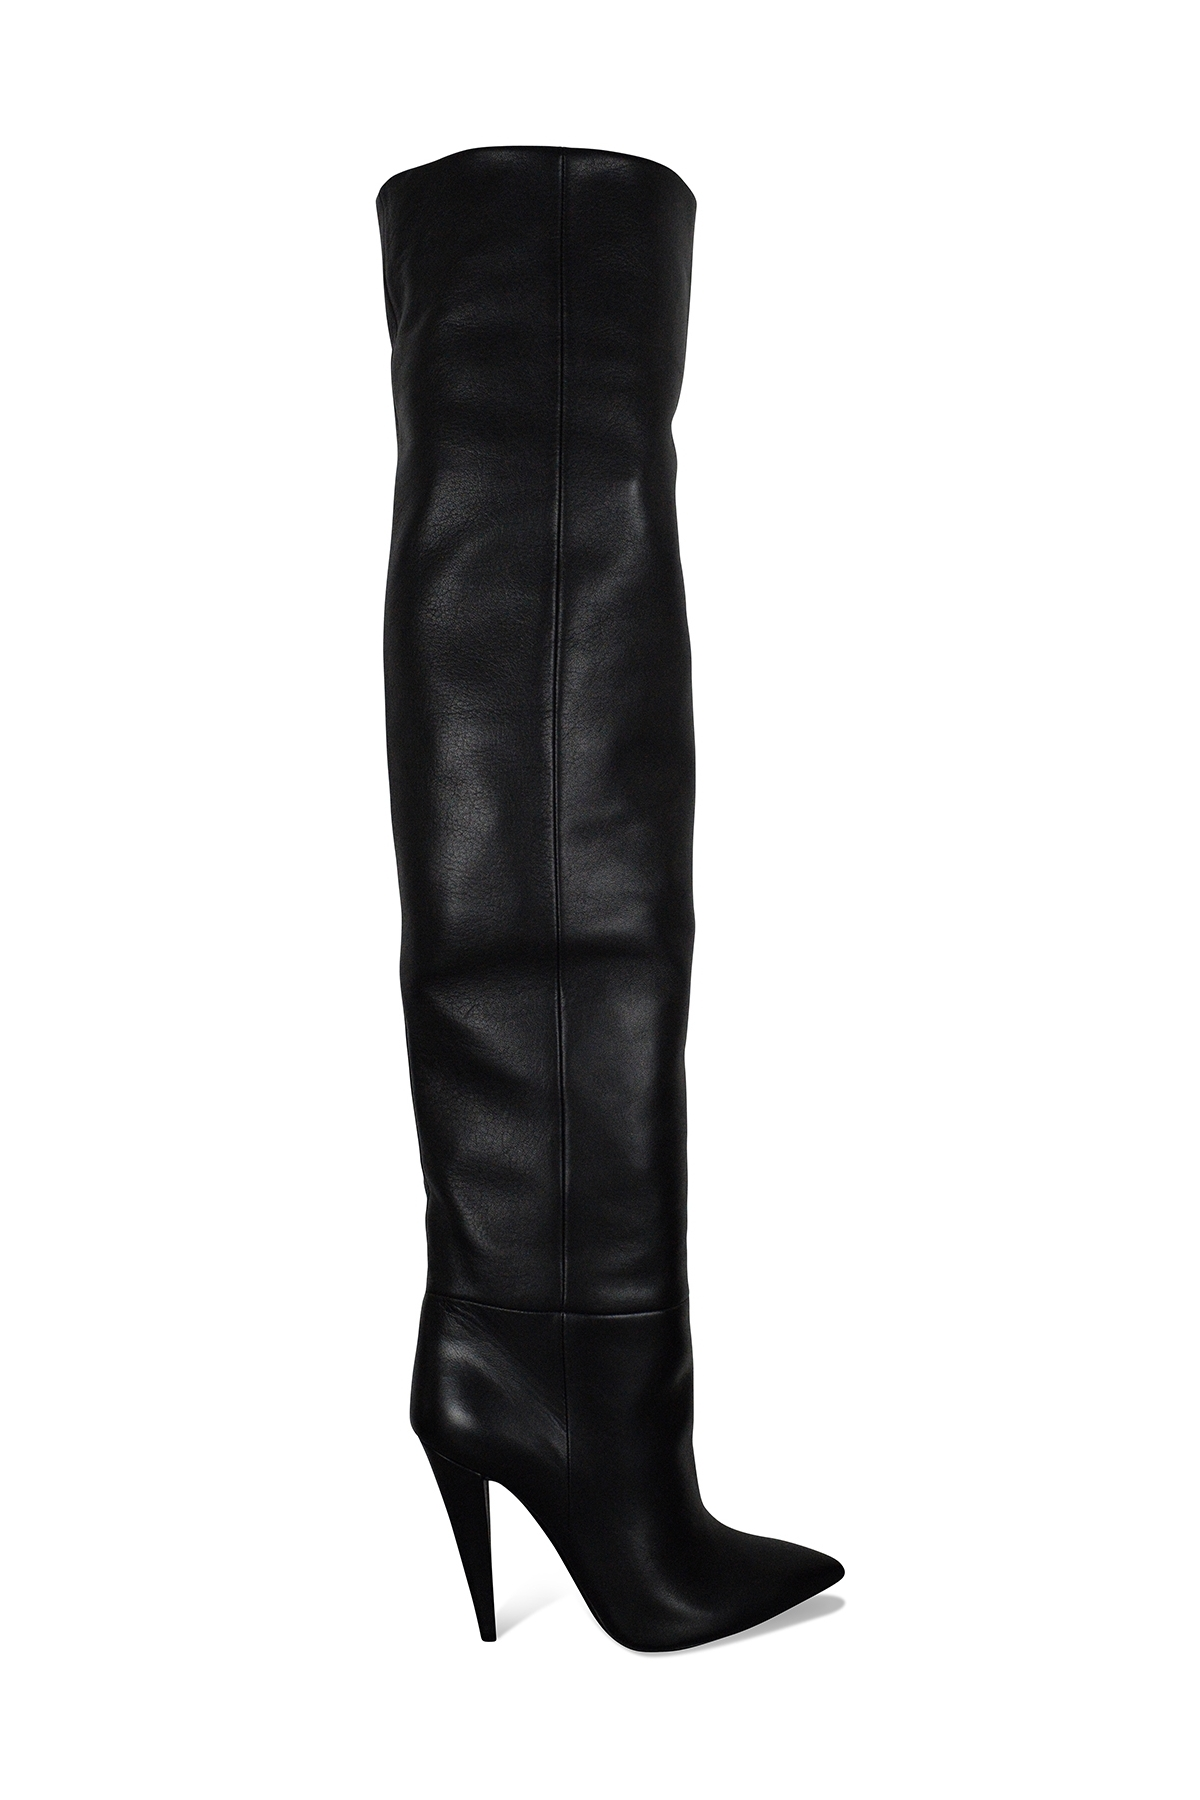 Saint Laurent Era 110 over-the-knee boots in black leather with high heel